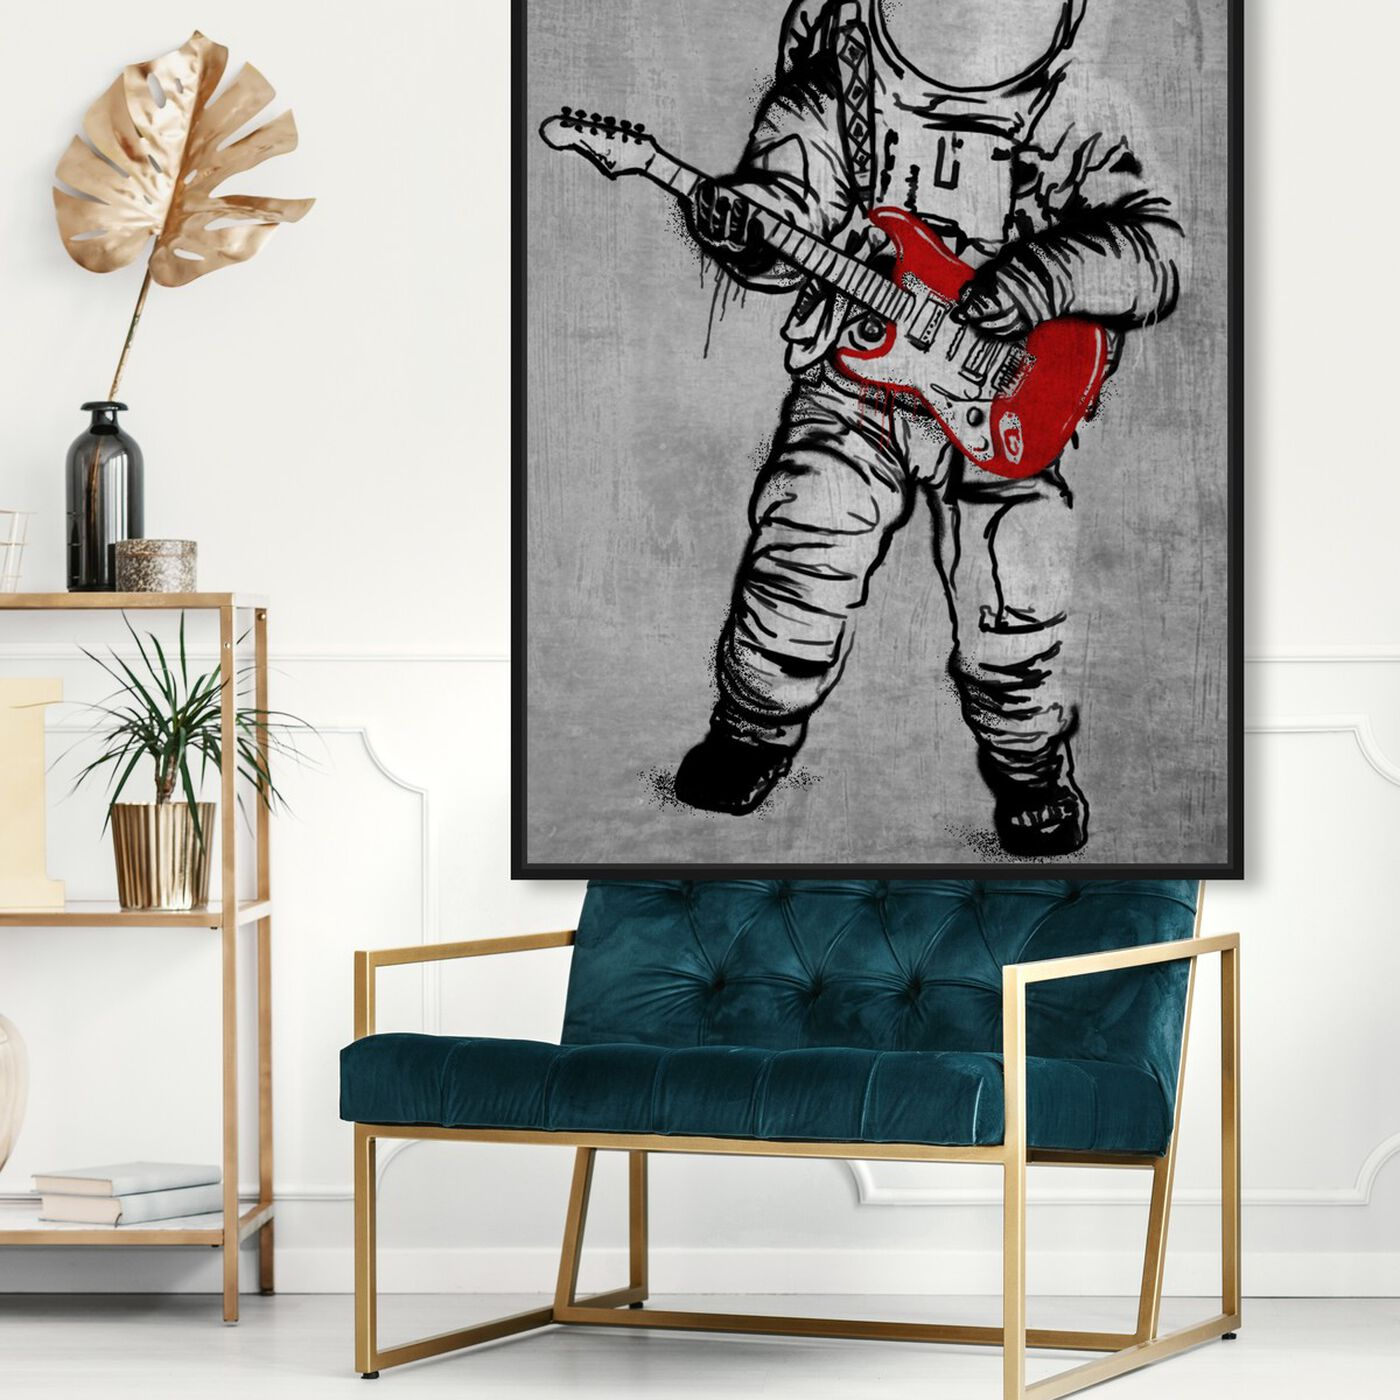 Hanging view of Moontunes featuring astronomy and space and astronaut art.